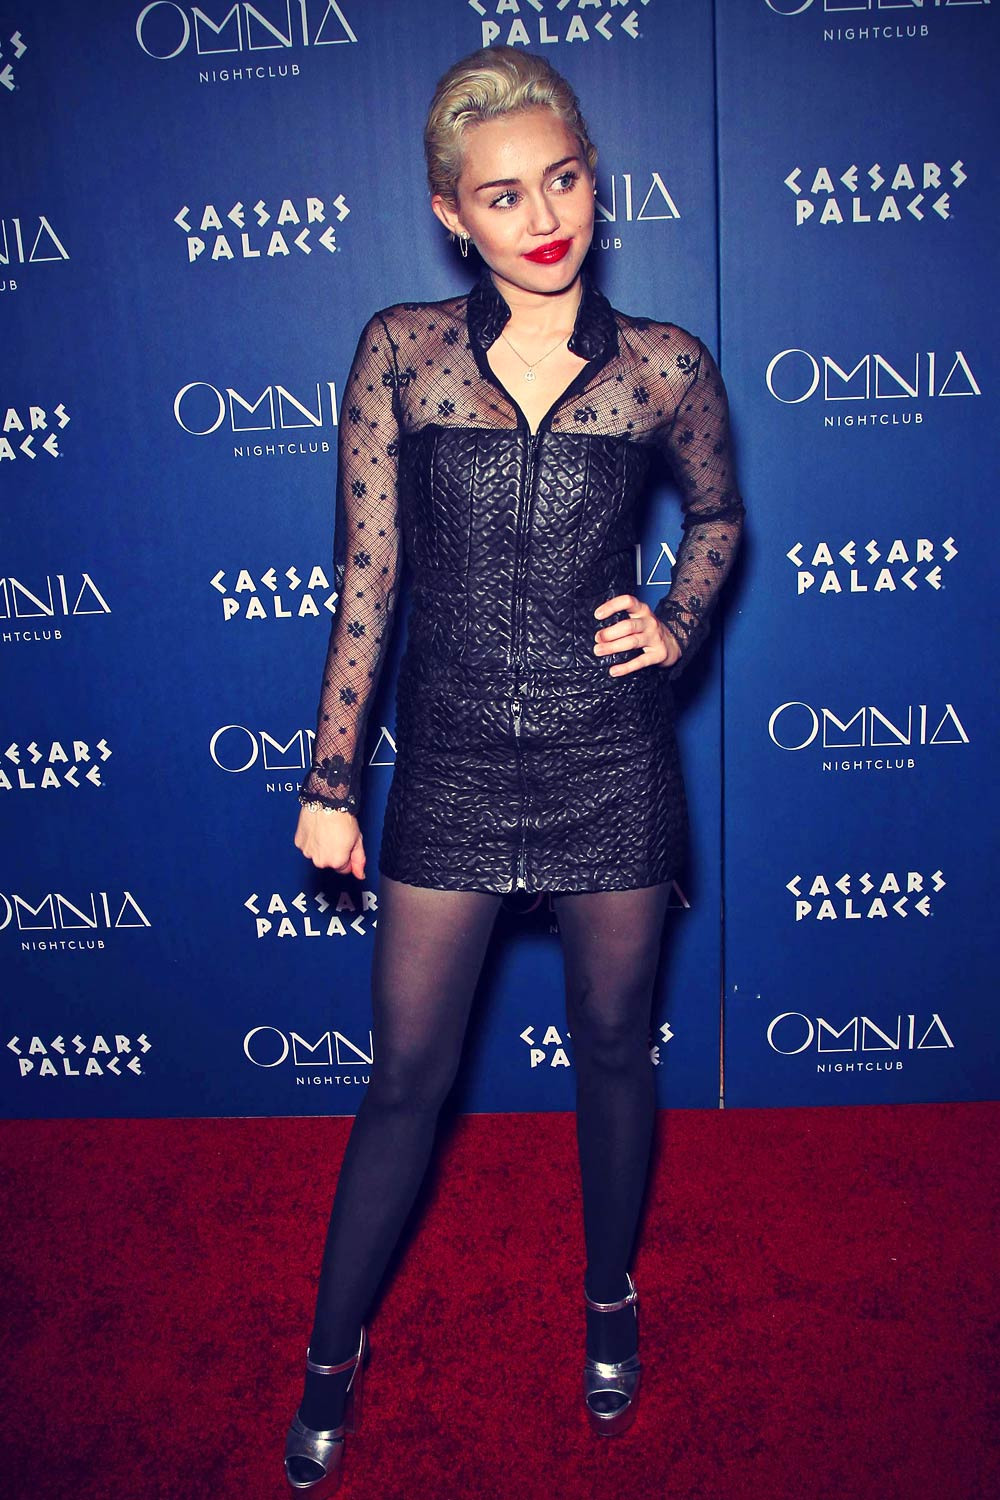 Miley Cyrus At Omnia Nightclub Leather Celebrities